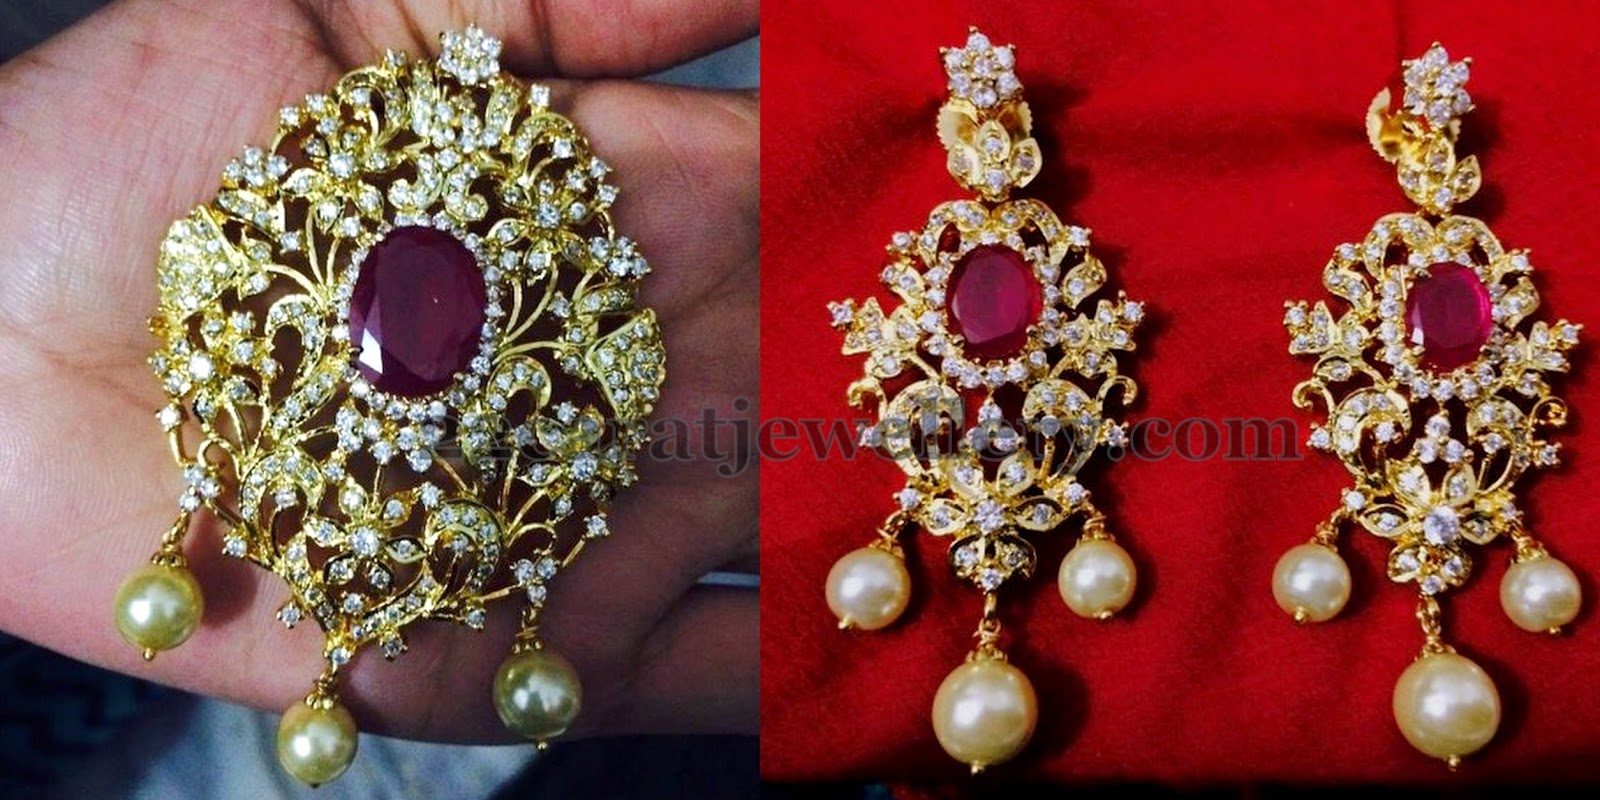 1 gram gold cz pendants gallery jewellery designs 1 gram gold cz pendants gallery aloadofball Image collections